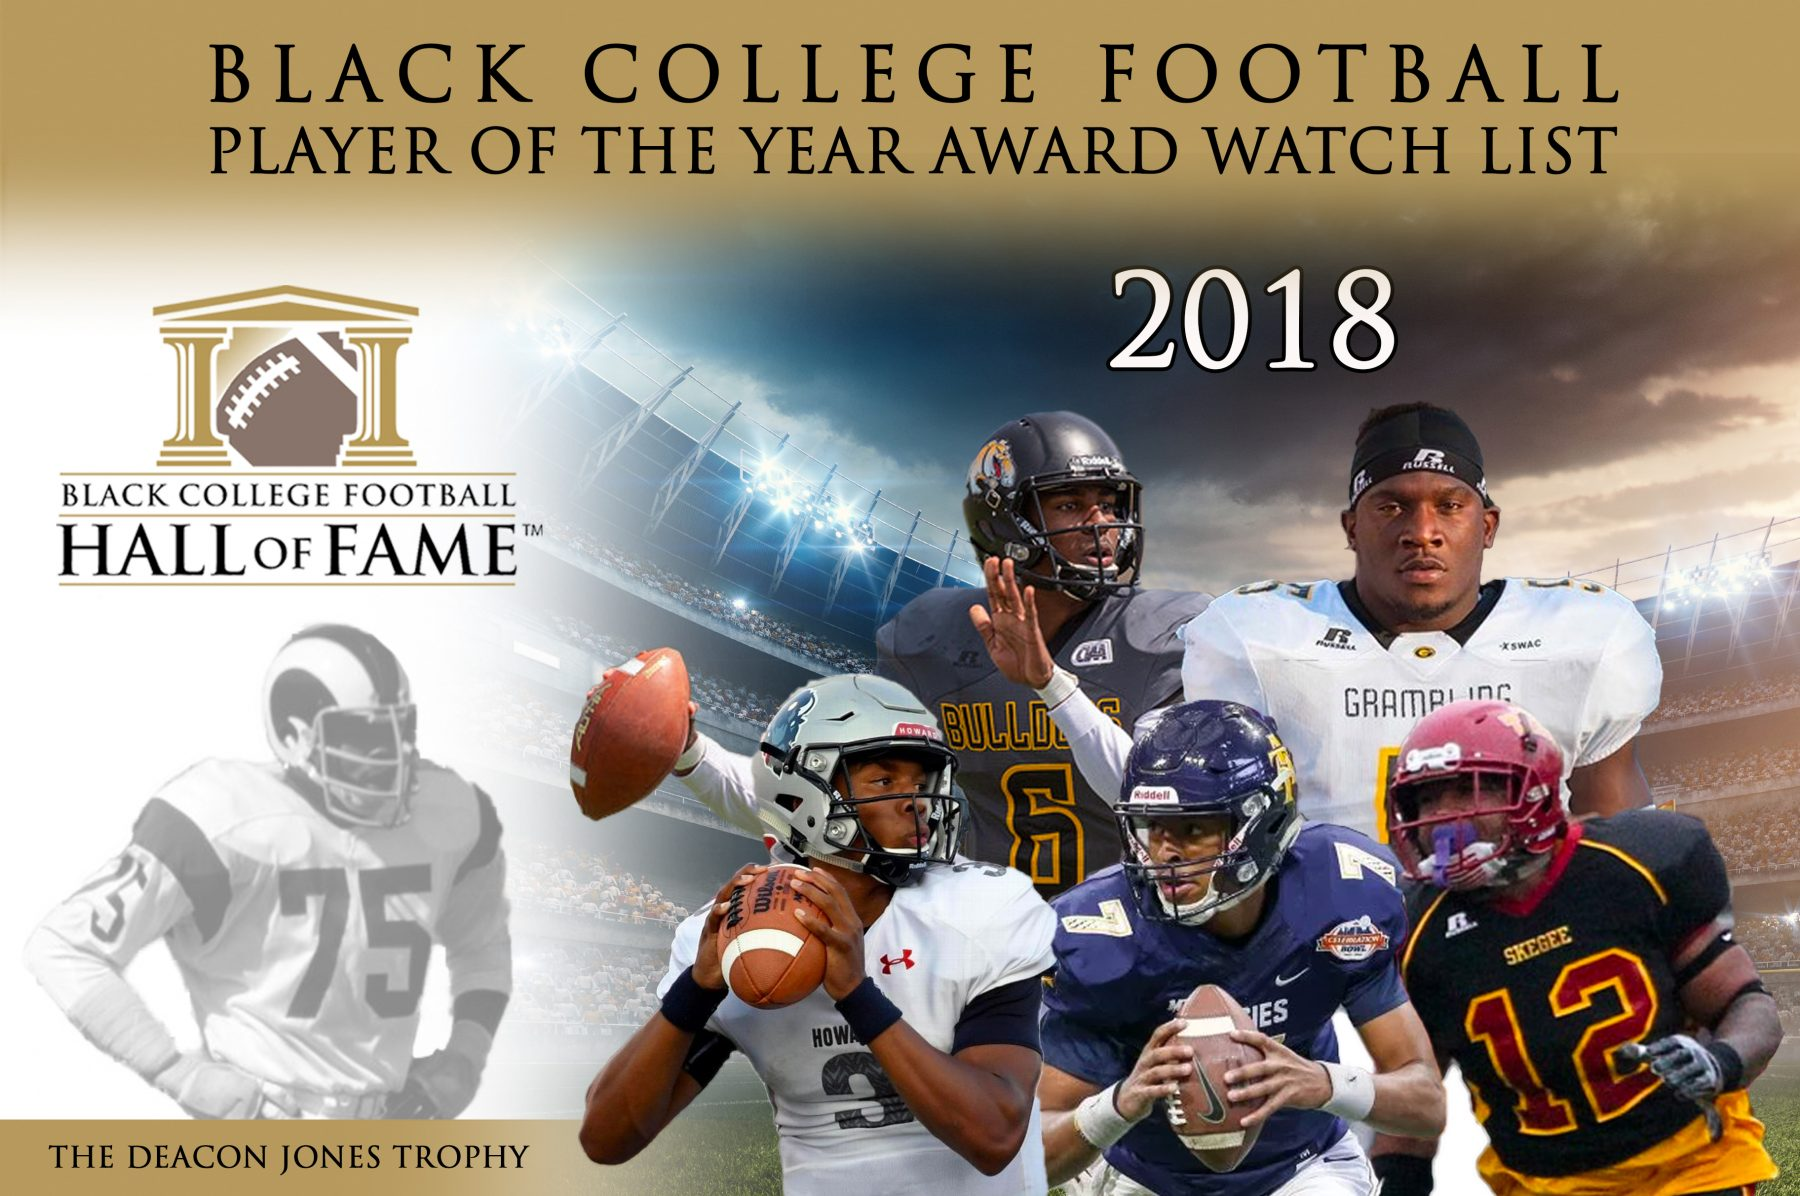 BCFHOF releases 2018 Watch List for Player of the Year